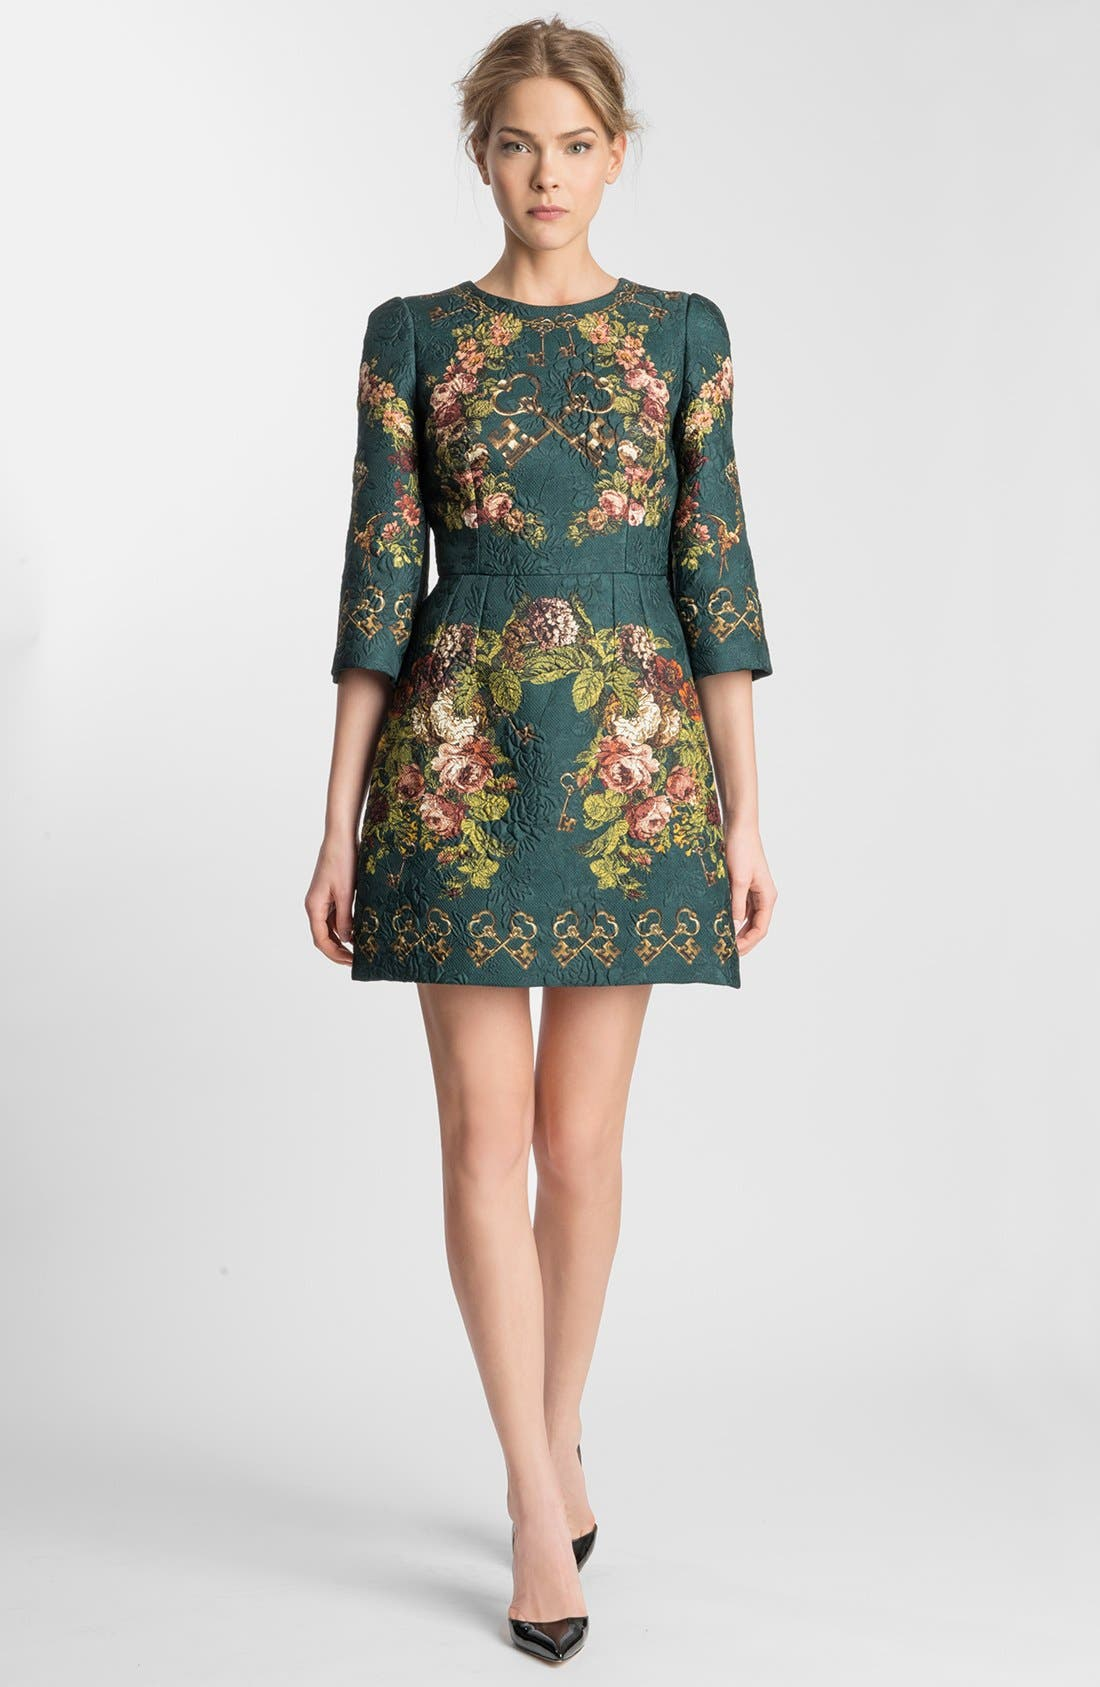 Alternate Image 1 Selected - Dolce&Gabbana Key Print Floral Brocade Dress